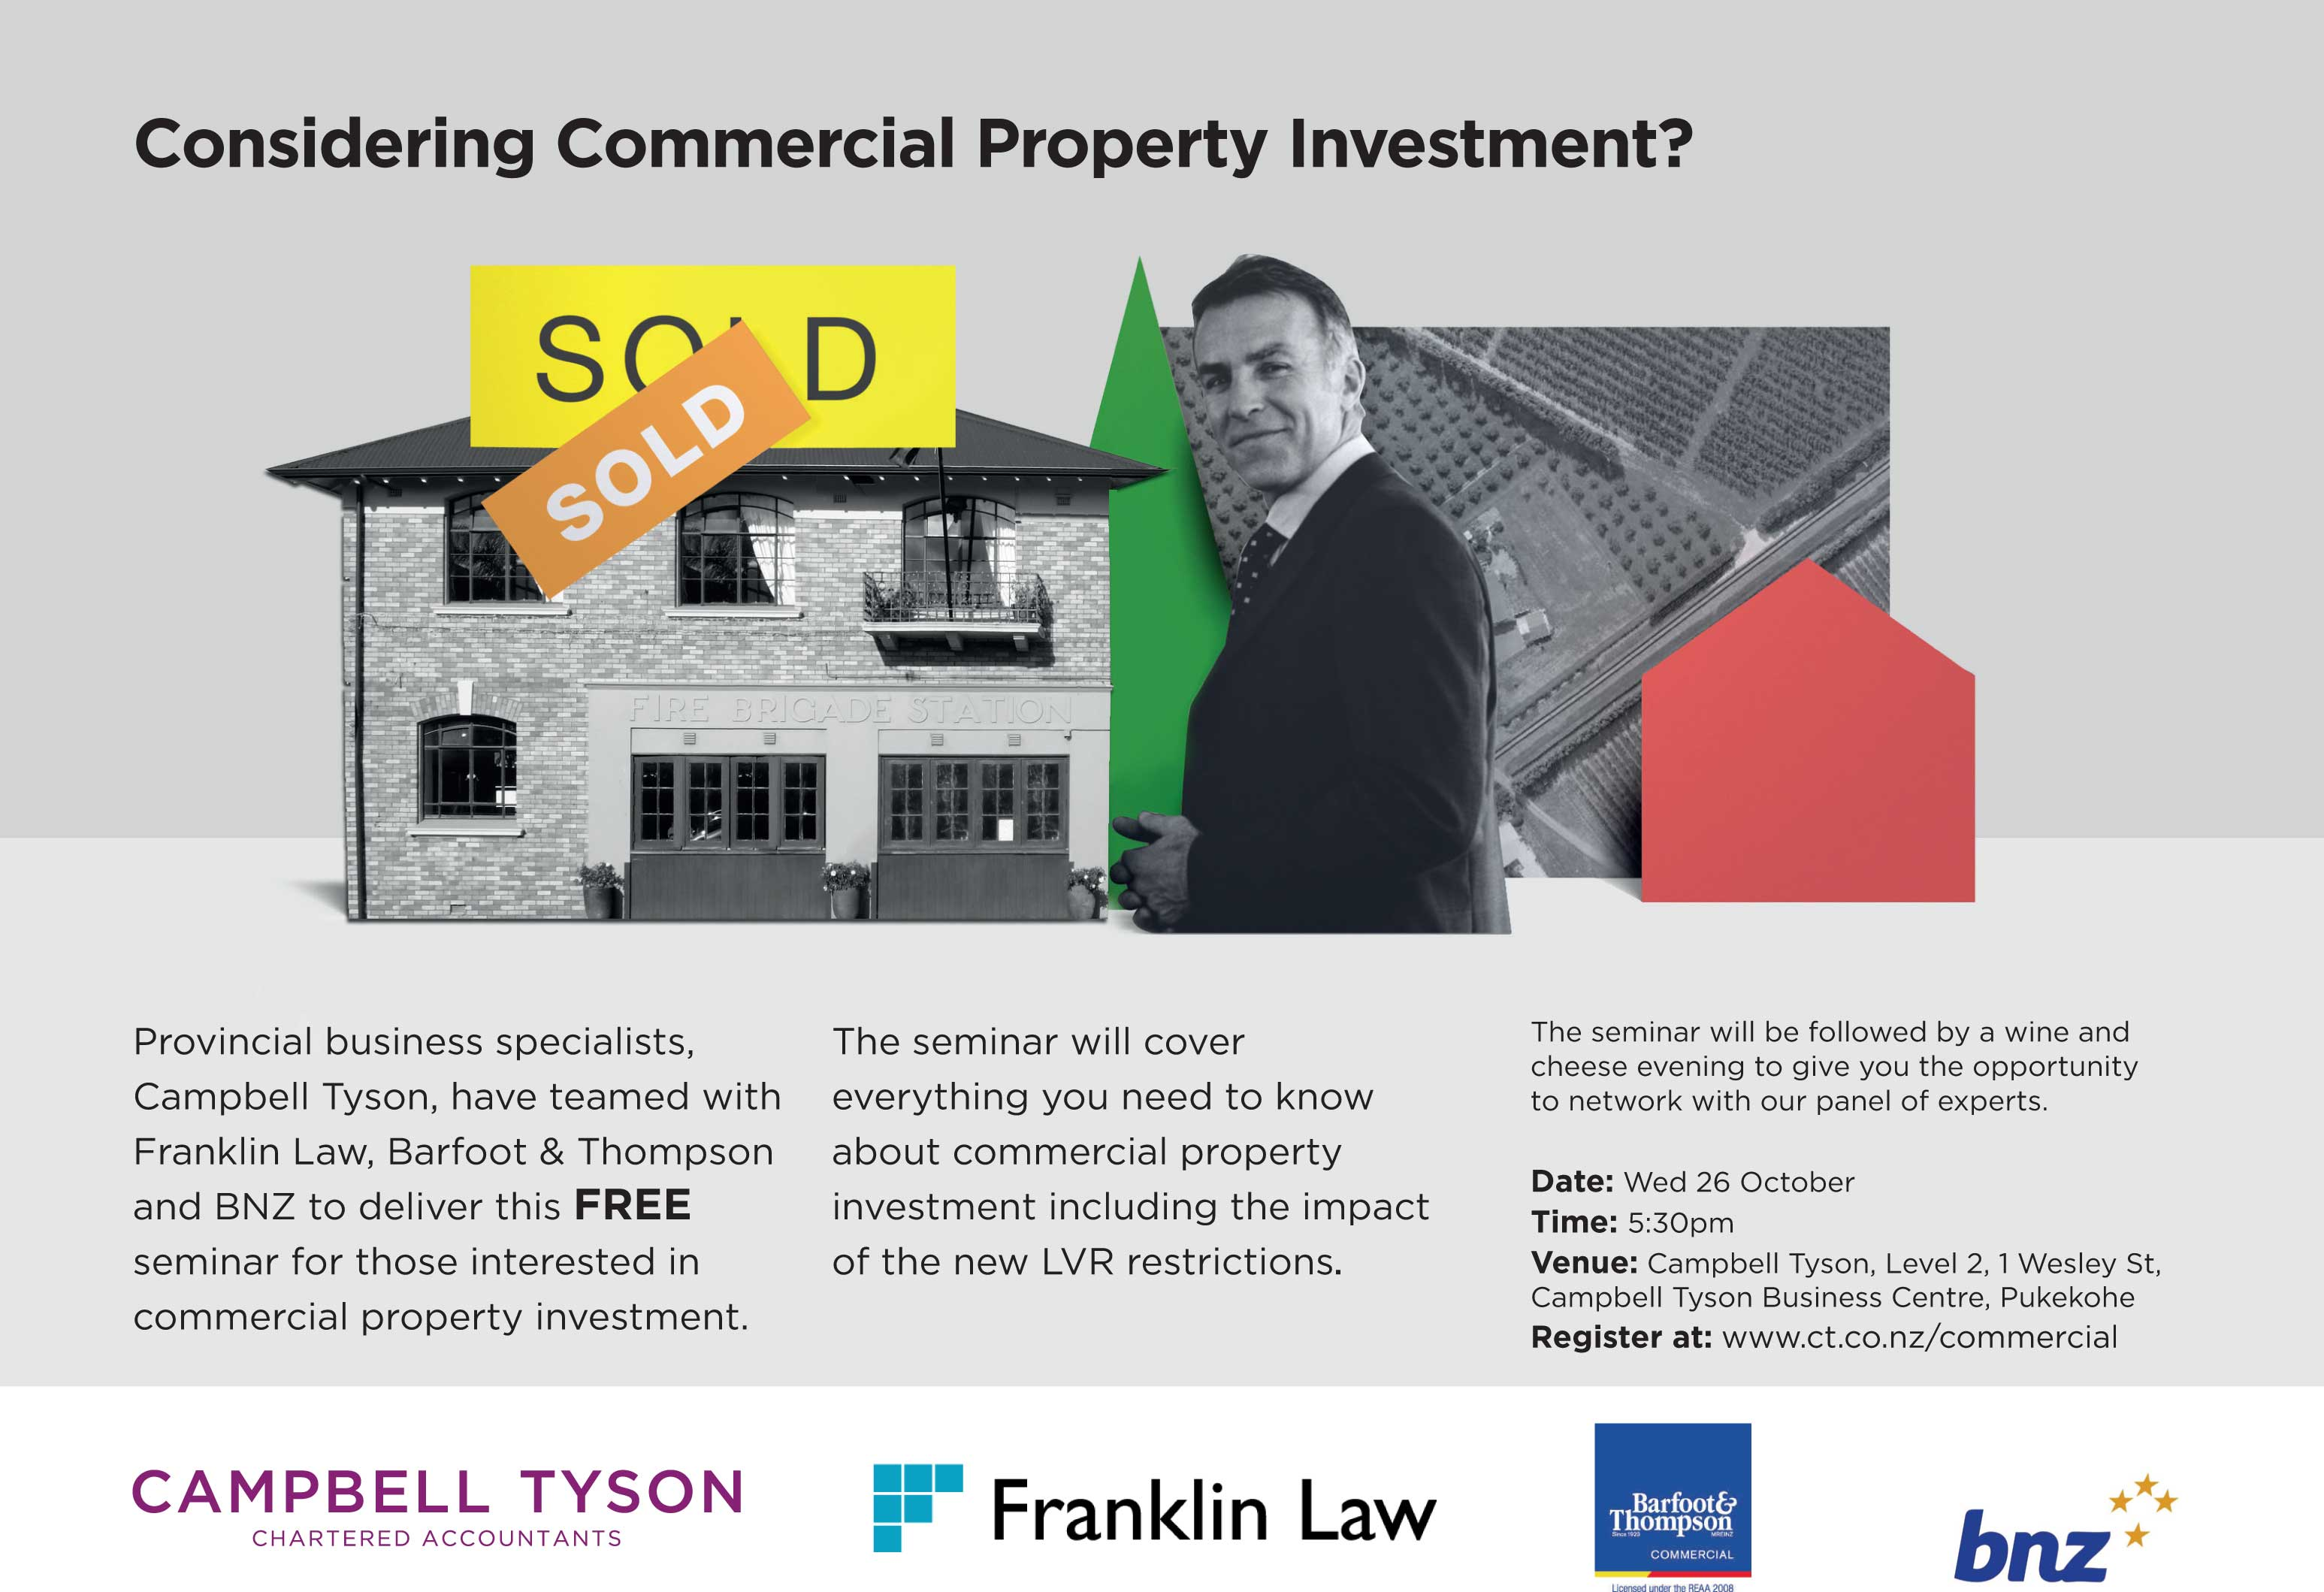 Commercial Property Law : Joint commercial property investment seminar provides